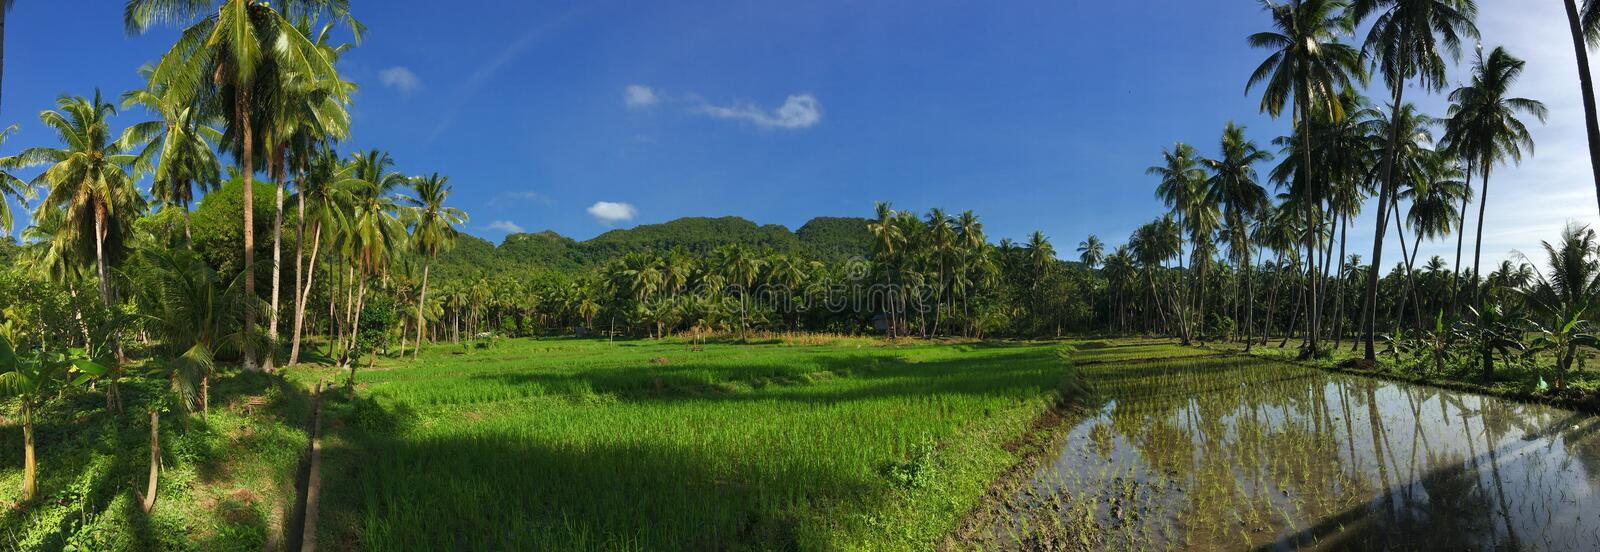 Rice field with palmtrees reflection Panorama royalty free stock photos